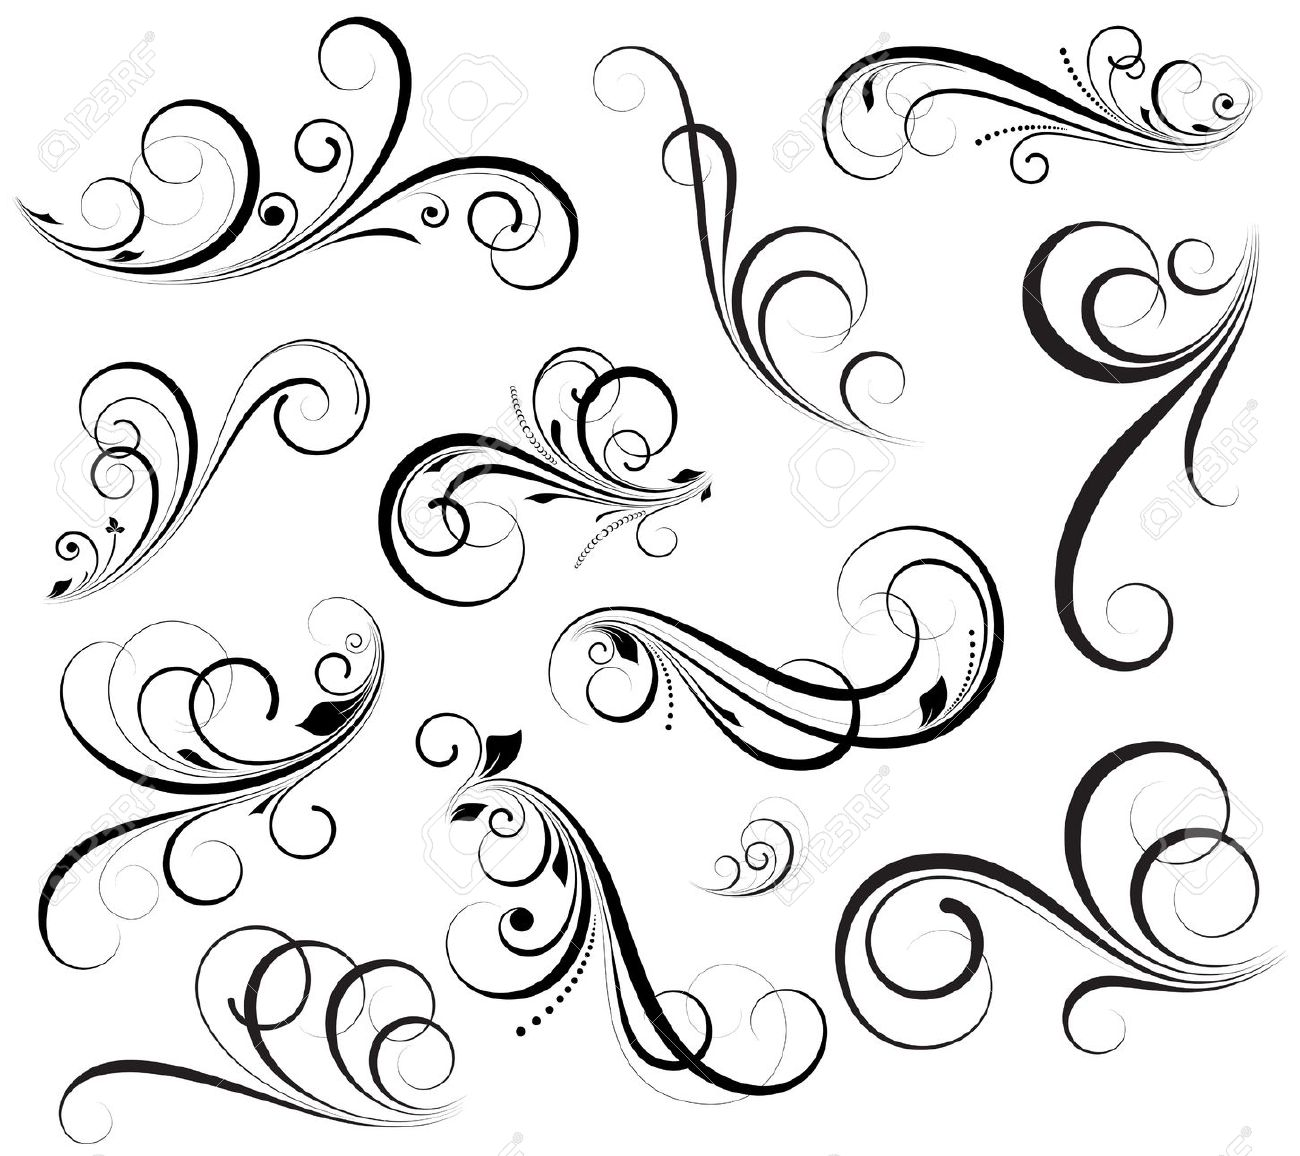 1300x1156 Swirls Vectors Royalty Free Cliparts And Stock